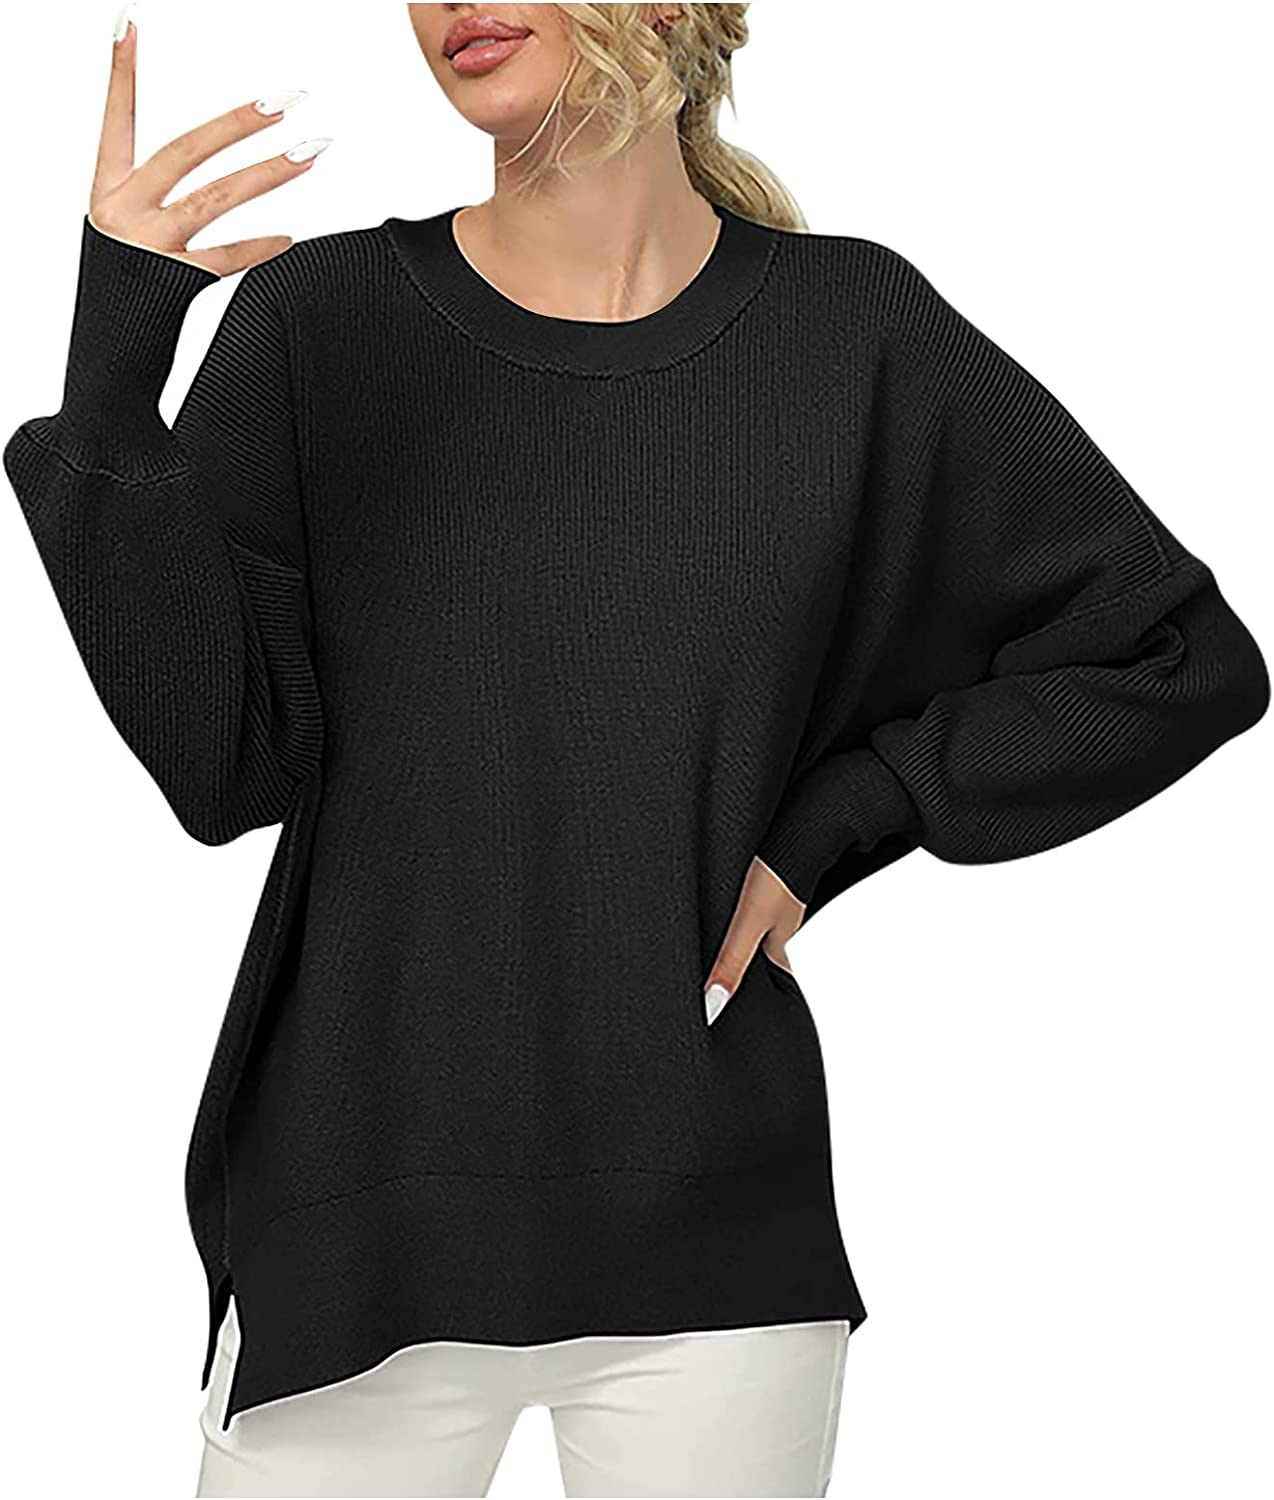 Women's Oversized Bat Sleeve Sweaters Long Sleeve Round Neck Side Split Rib Knit Pullover Solid Color Classic Sweater